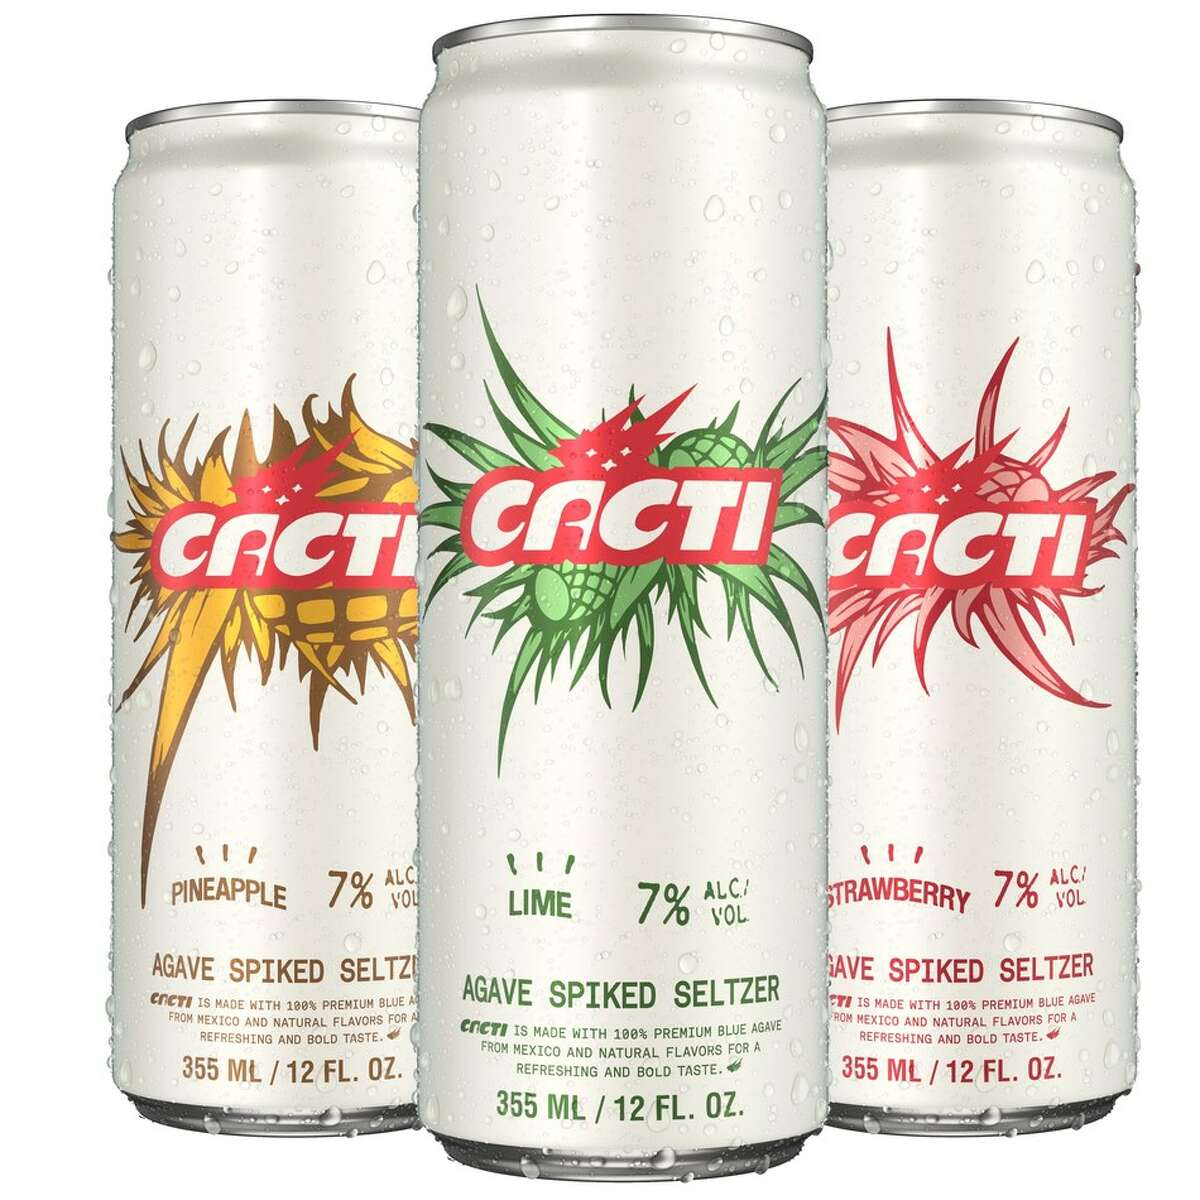 Travis Scott's upcoming alcoholic beverage CACTI, is available in strawberry, pineapple and lime.